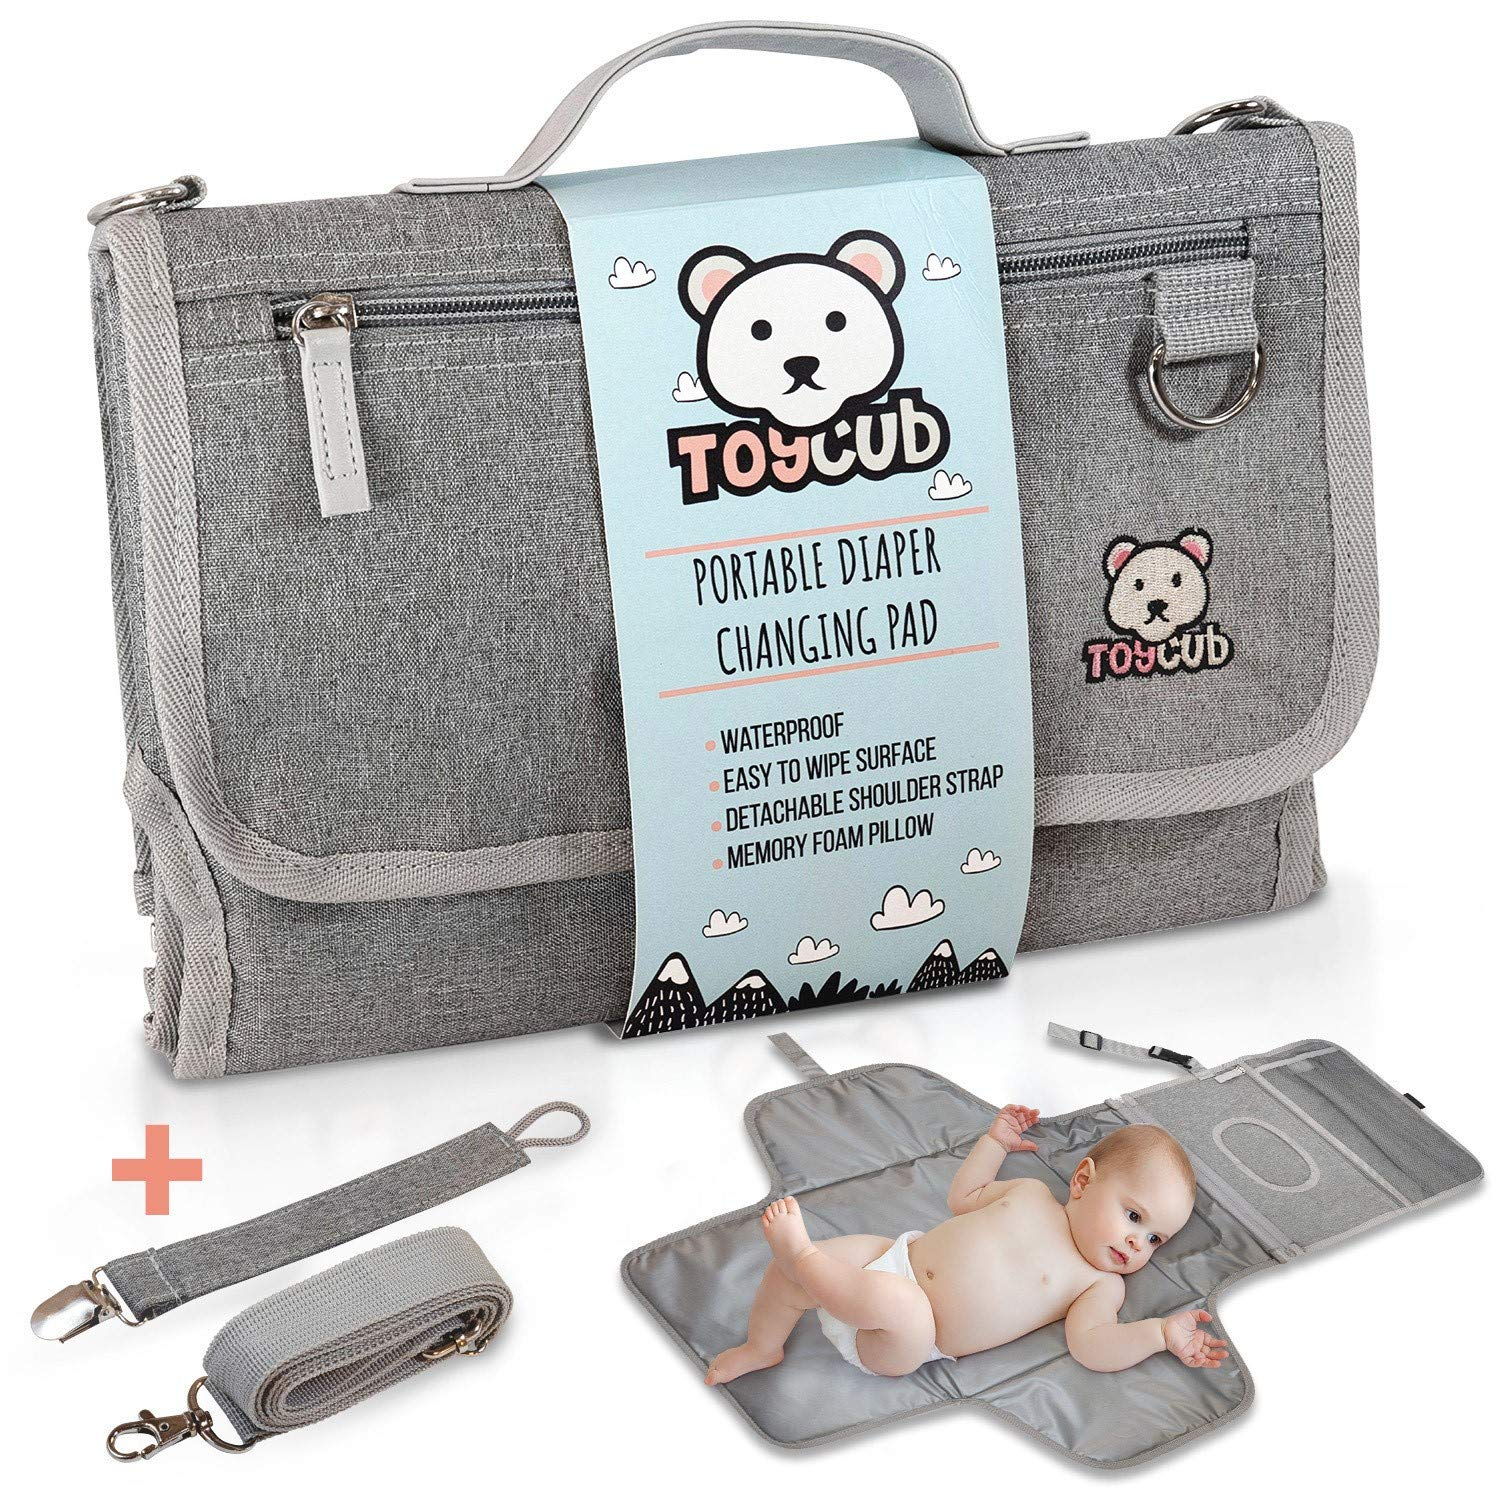 ToyCub?s Portable Changing Mat - Lightweight, Easy to Clean Baby Changing Pad, Waterproof Diaper Changing Pad with Head Cushion, Detachable Portable Changing Pad for Baby Showers, Travel Changing Pad